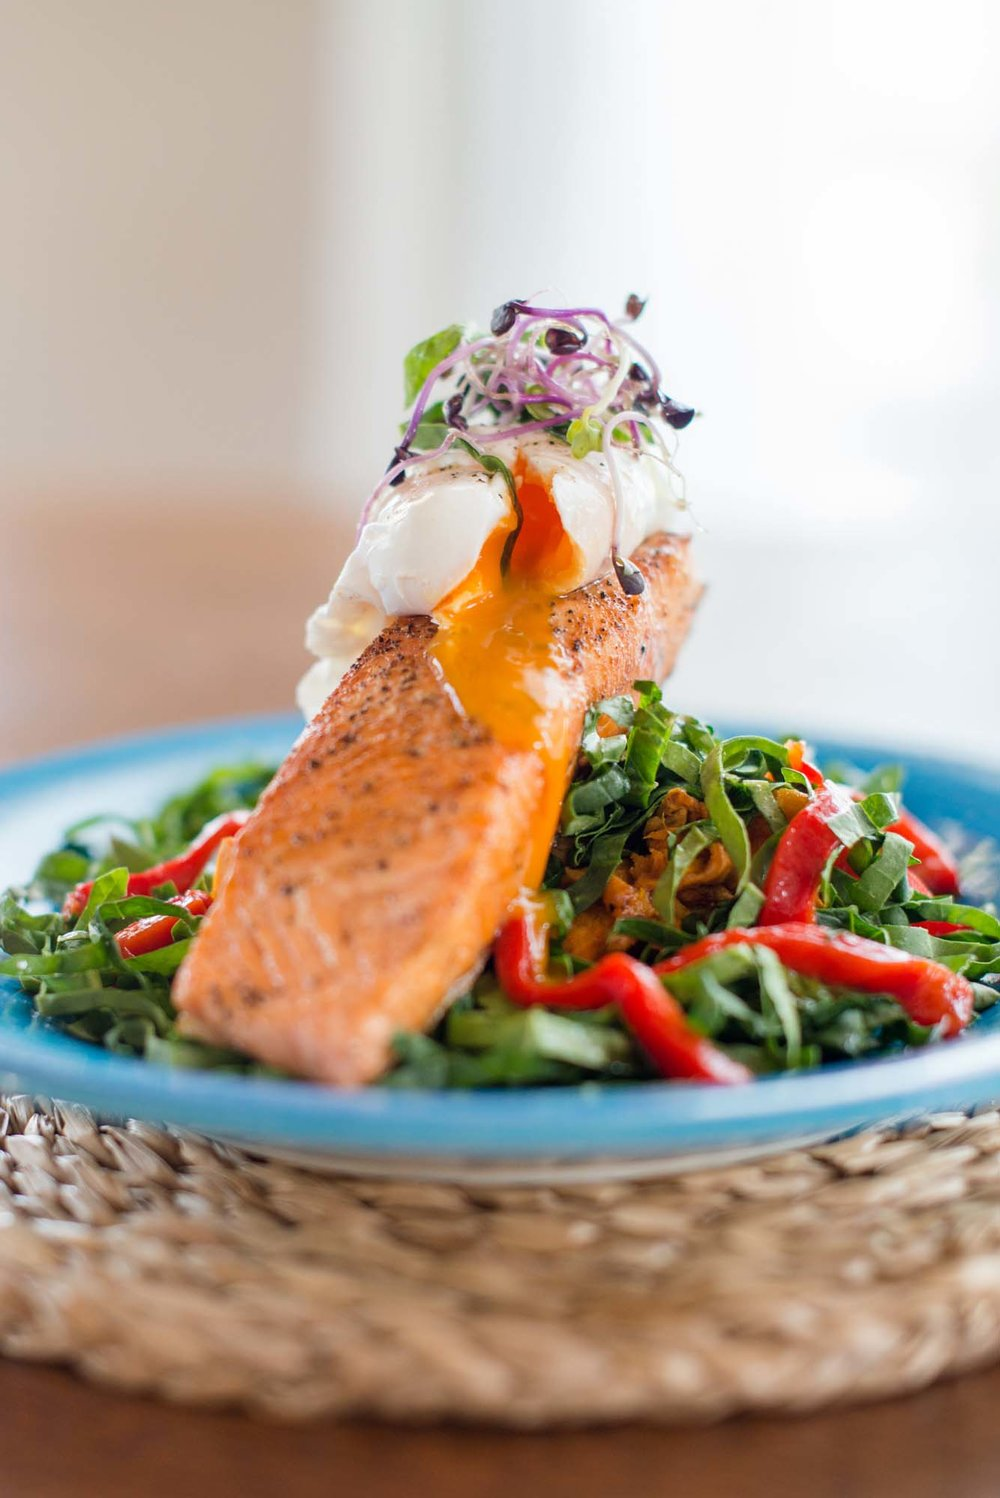 Chef Ben Whale's roast salmon with sweet potato hash and poached egg